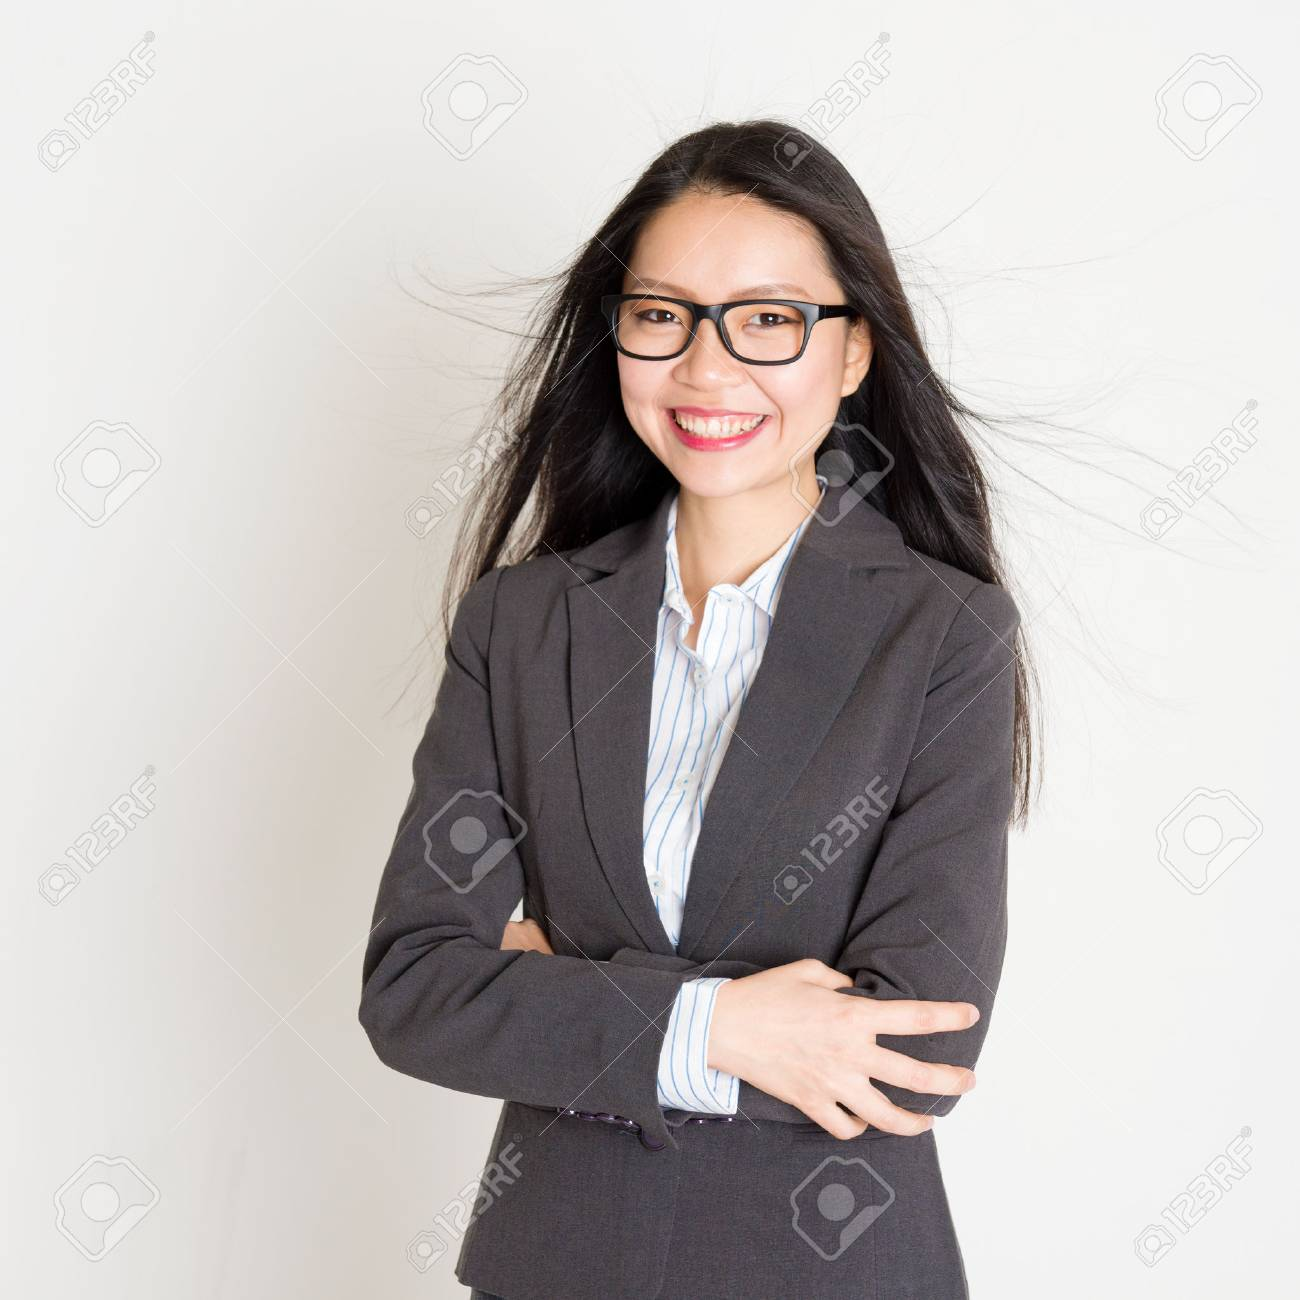 Portrait of young Asian businesswoman in formalwear smiling and looking at camera, standing on plain background. - 70286186